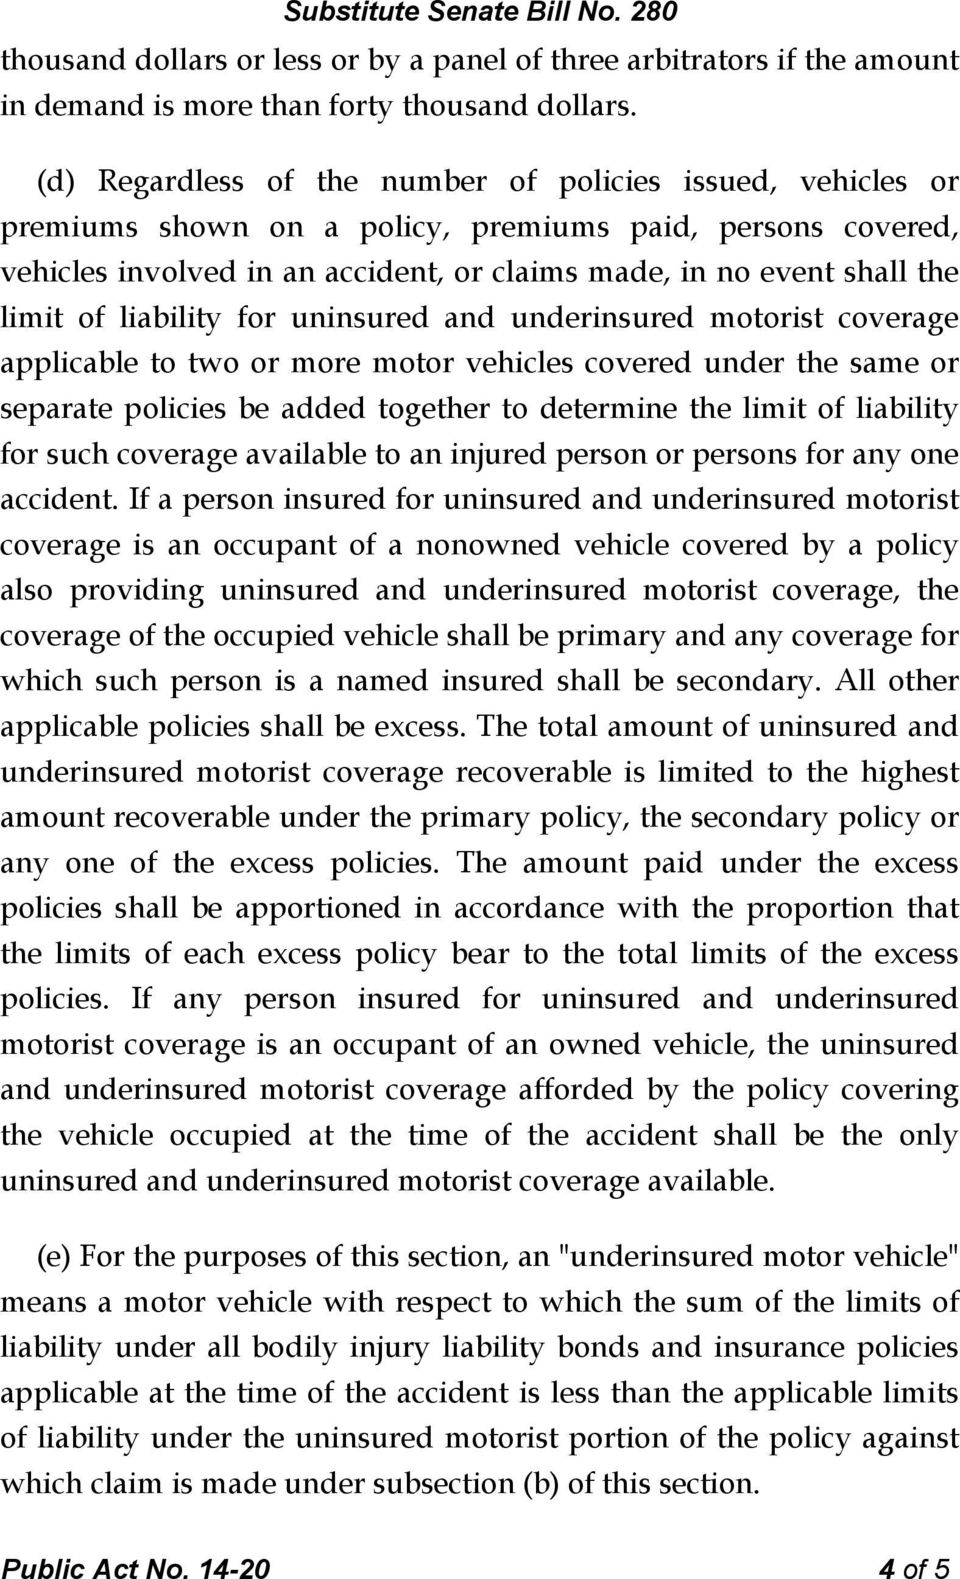 of liability for uninsured and underinsured motorist coverage applicable to two or more motor vehicles covered under the same or separate policies be added together to determine the limit of